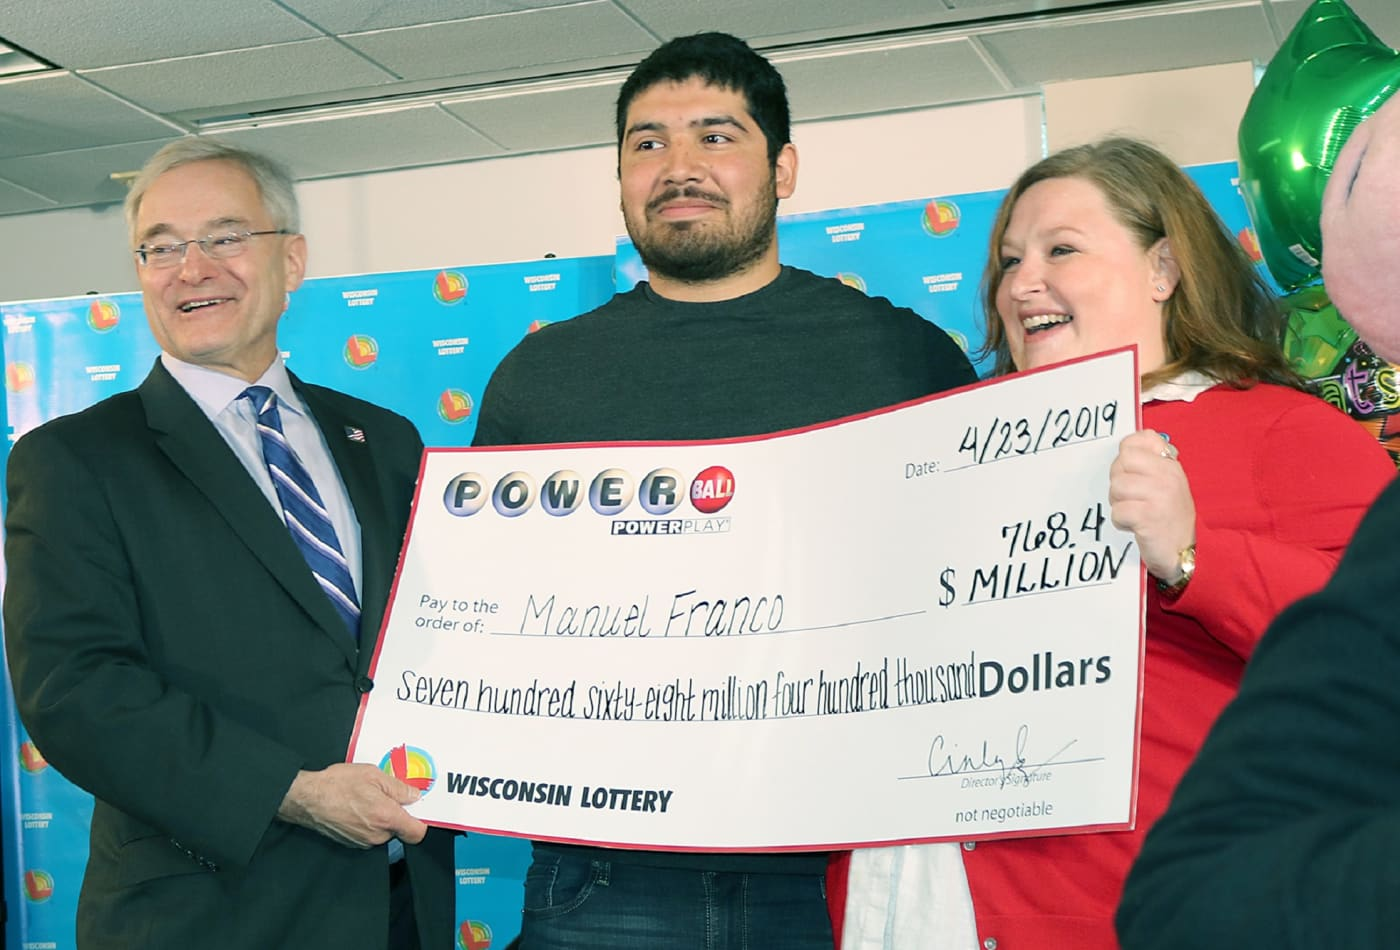 Wisconsin Powerball winner Franco had under $1,000 in his